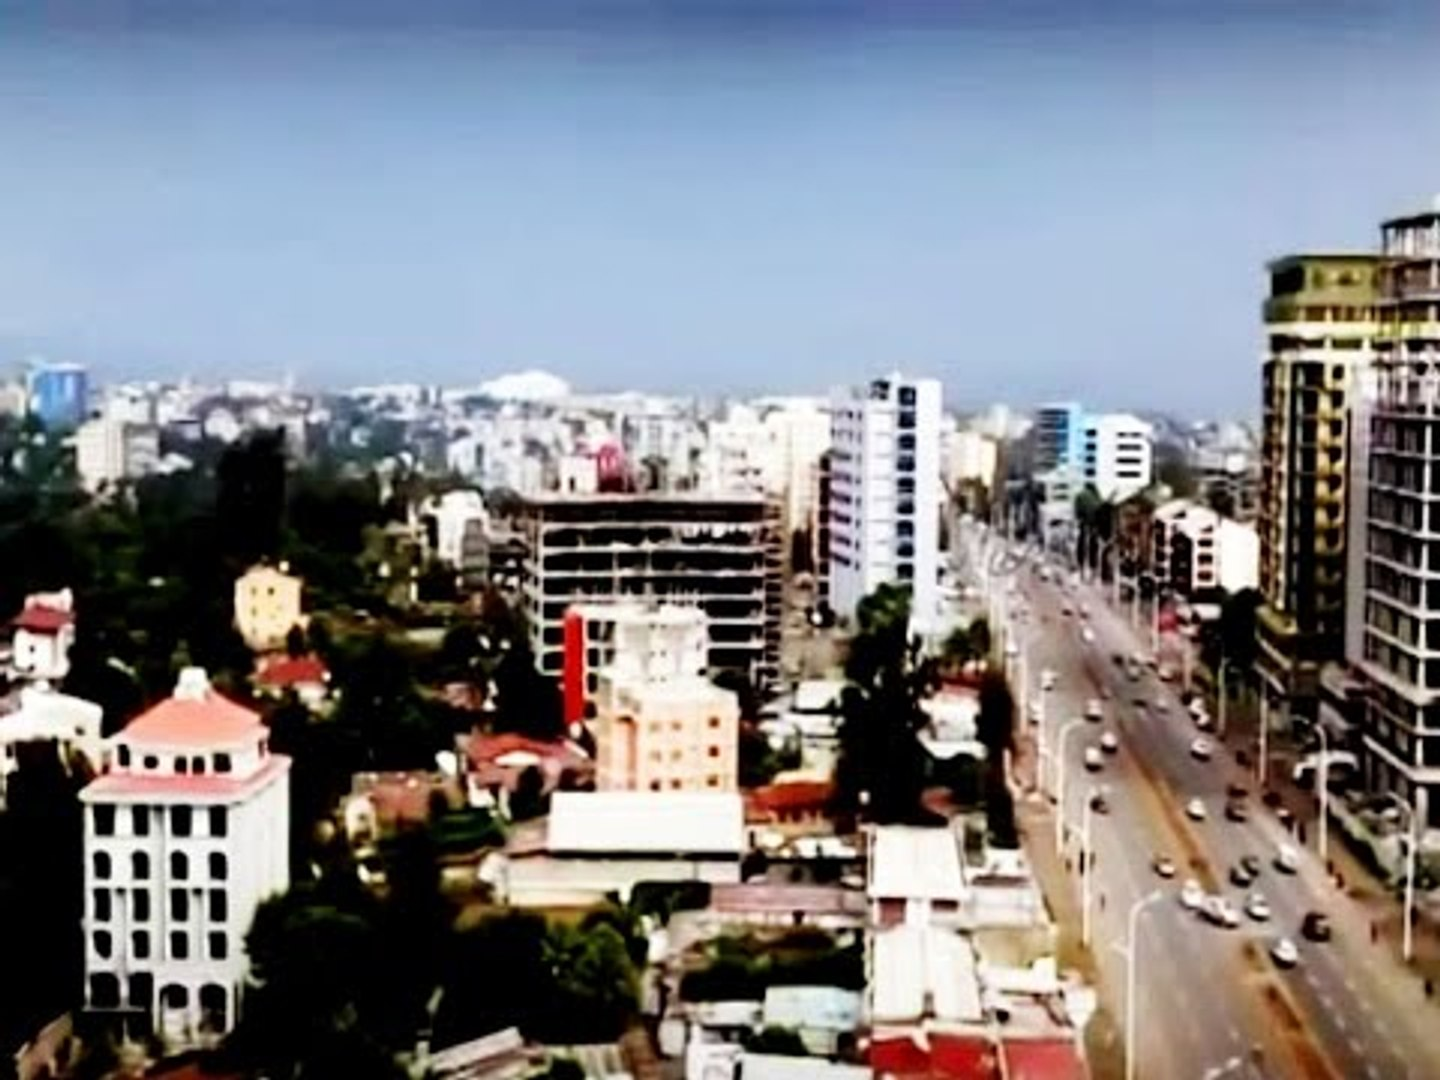 Bilicda & quruxda Addis Ababa   Drive and see the new and beautiful Addis Ababa  2015